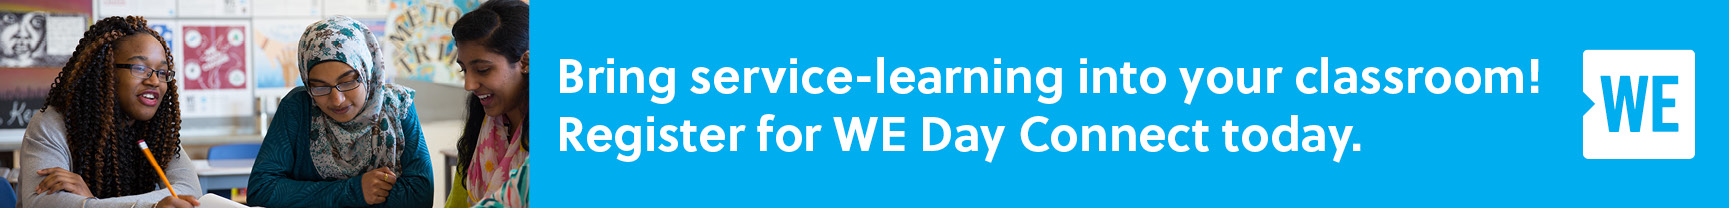 Bring service-learning into your classroom! Register for WE Day Connect today.